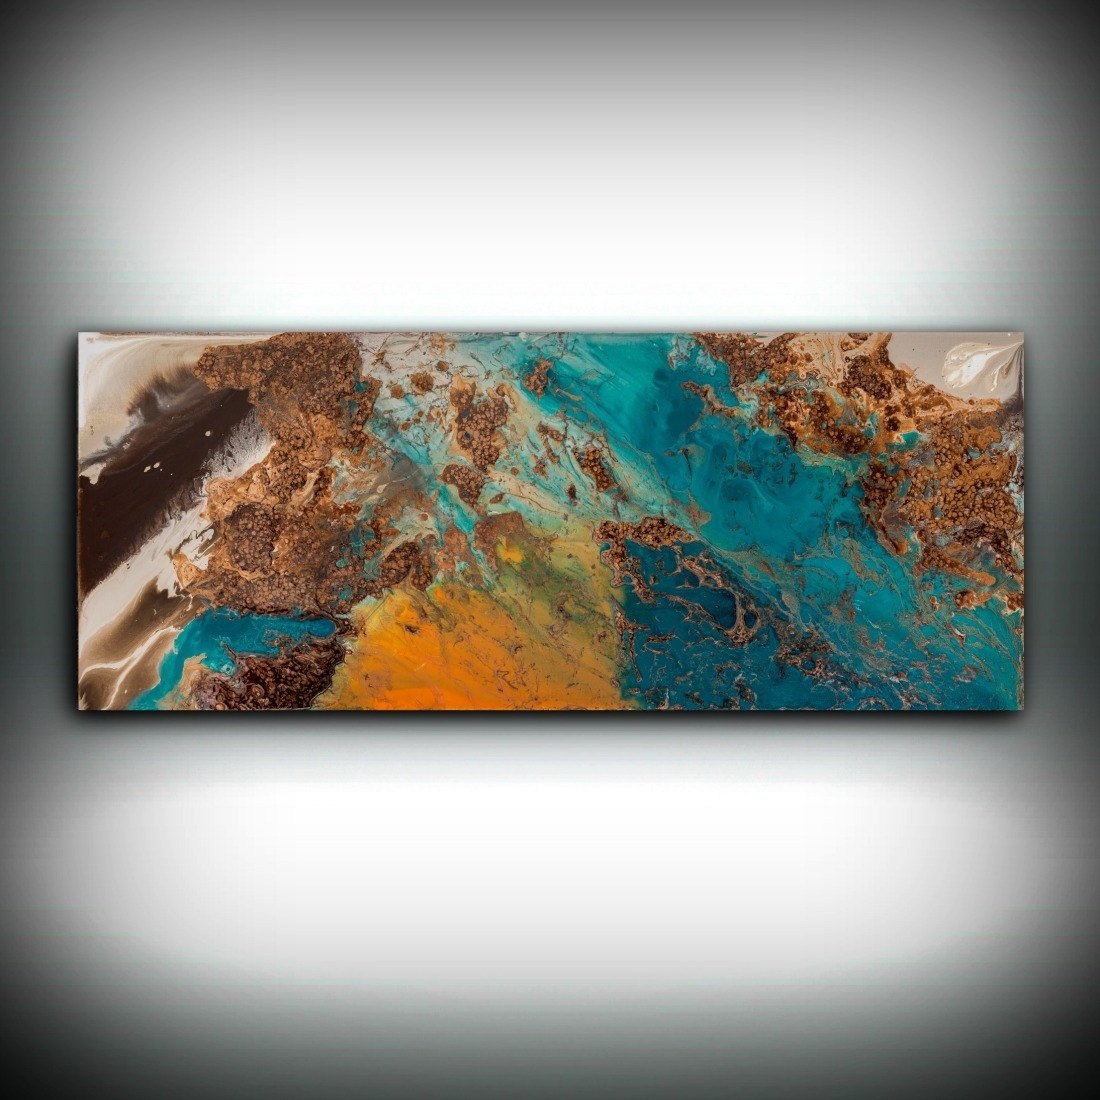 Sale Blue And Copper Art, Wall Art Prints Fine Art Prints Abstract Intended For Recent Blue Canvas Abstract Wall Art (View 17 of 20)